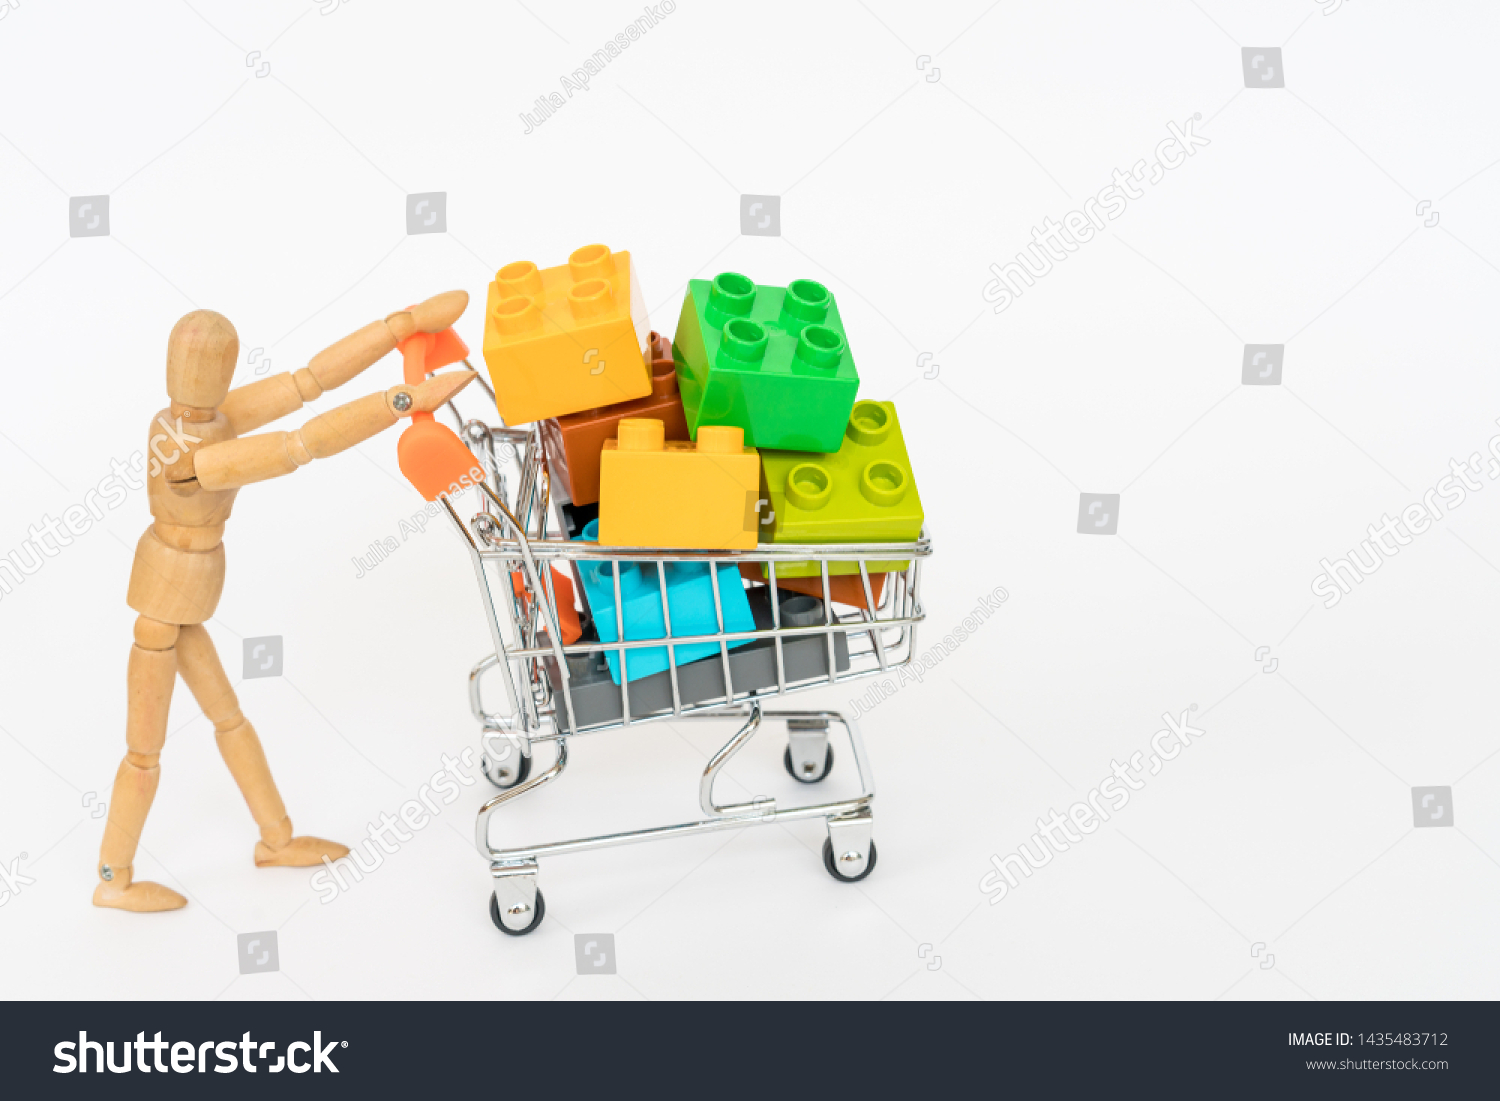 Wooden Mannequin Carries Shopping Cart Lego Stock Photo Edit Now 1435483712